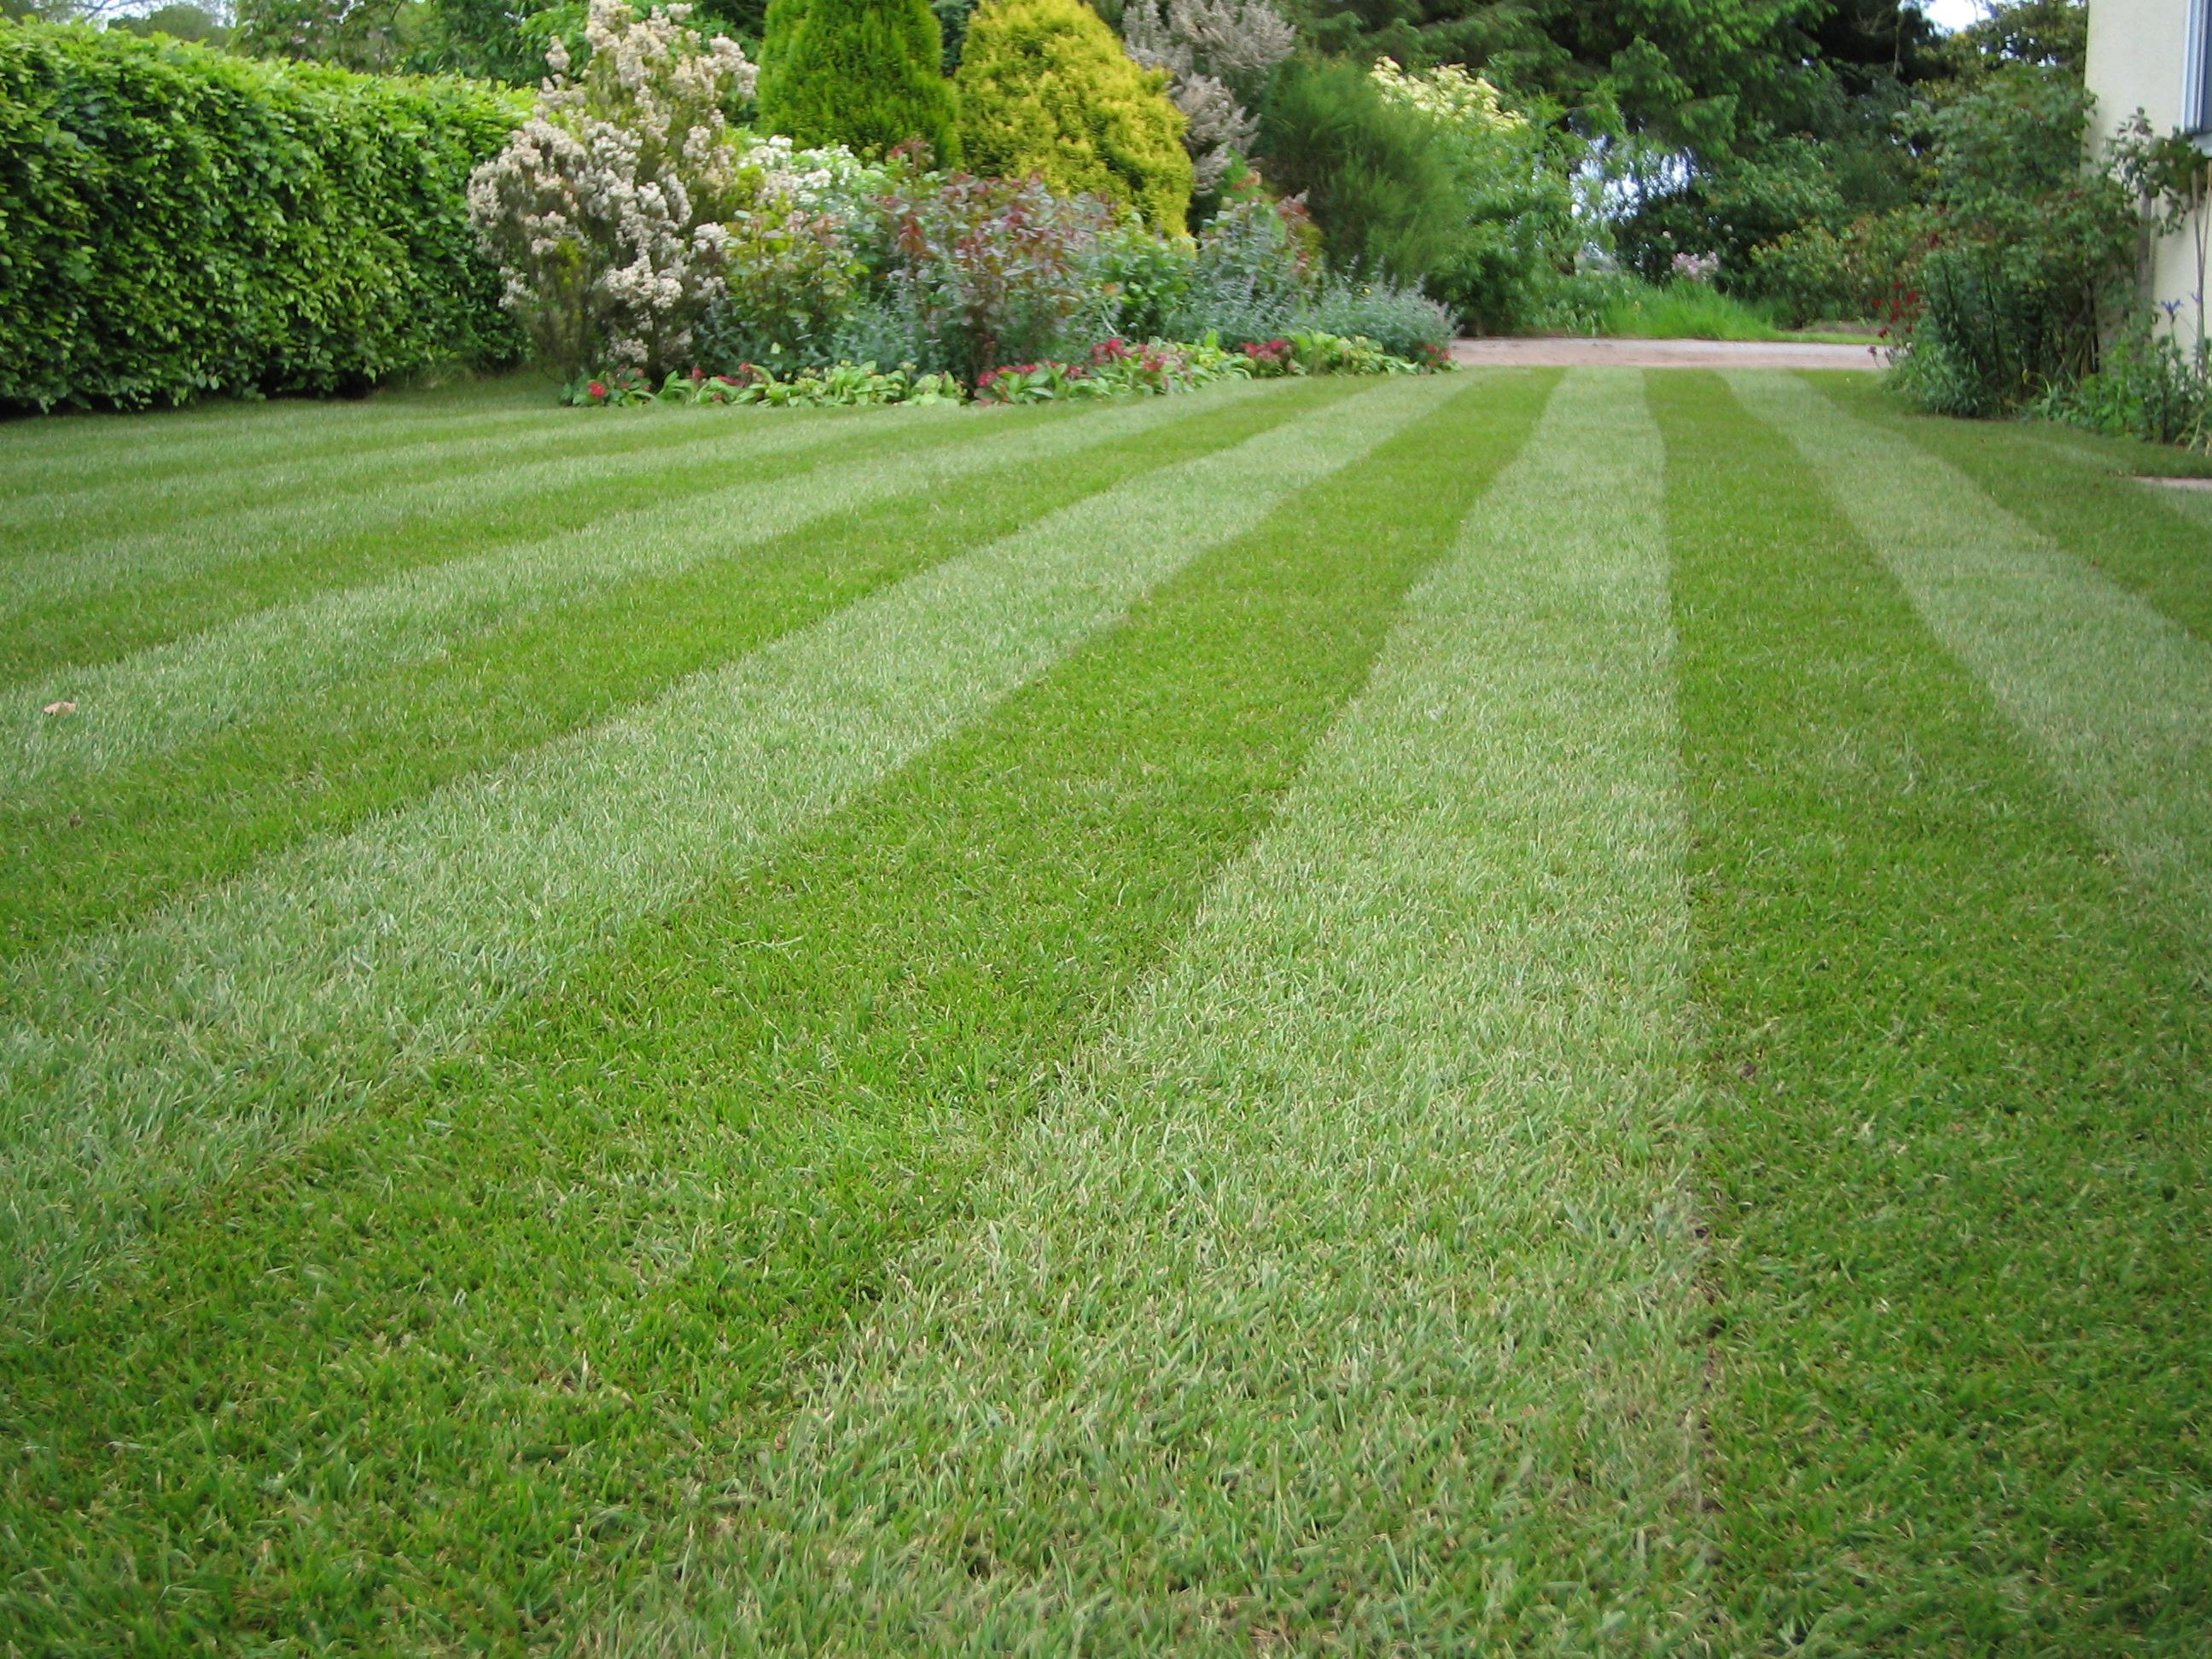 Lawn maintenance in lowndes county by lawncare valdosta for Lawn care and maintenance